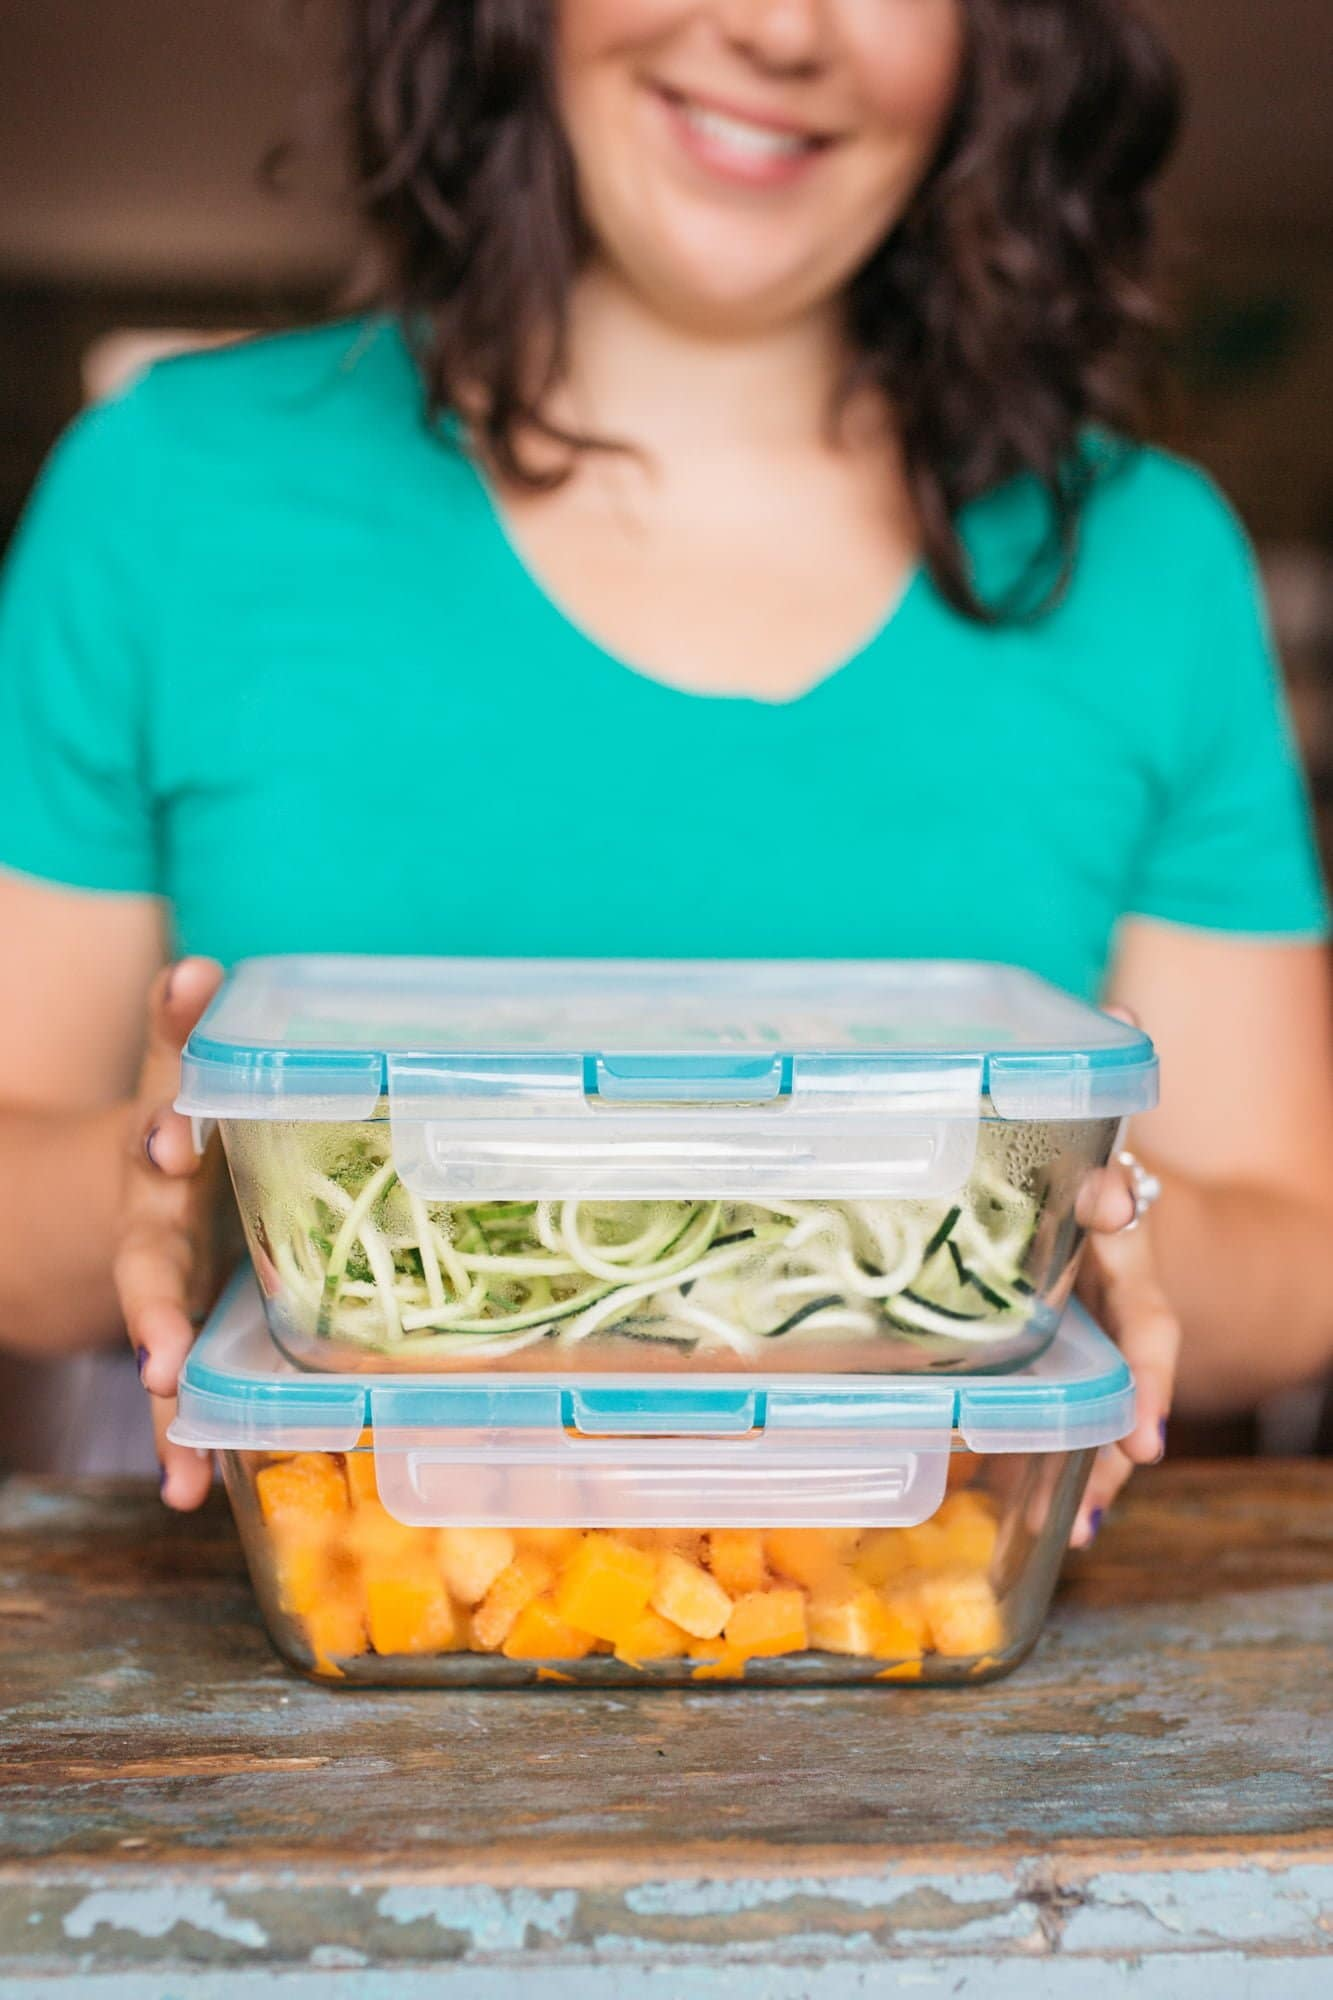 Close-up of a woman holding glass containers. One is filled with zucchini noodles, and the other with sweet potato cubes.